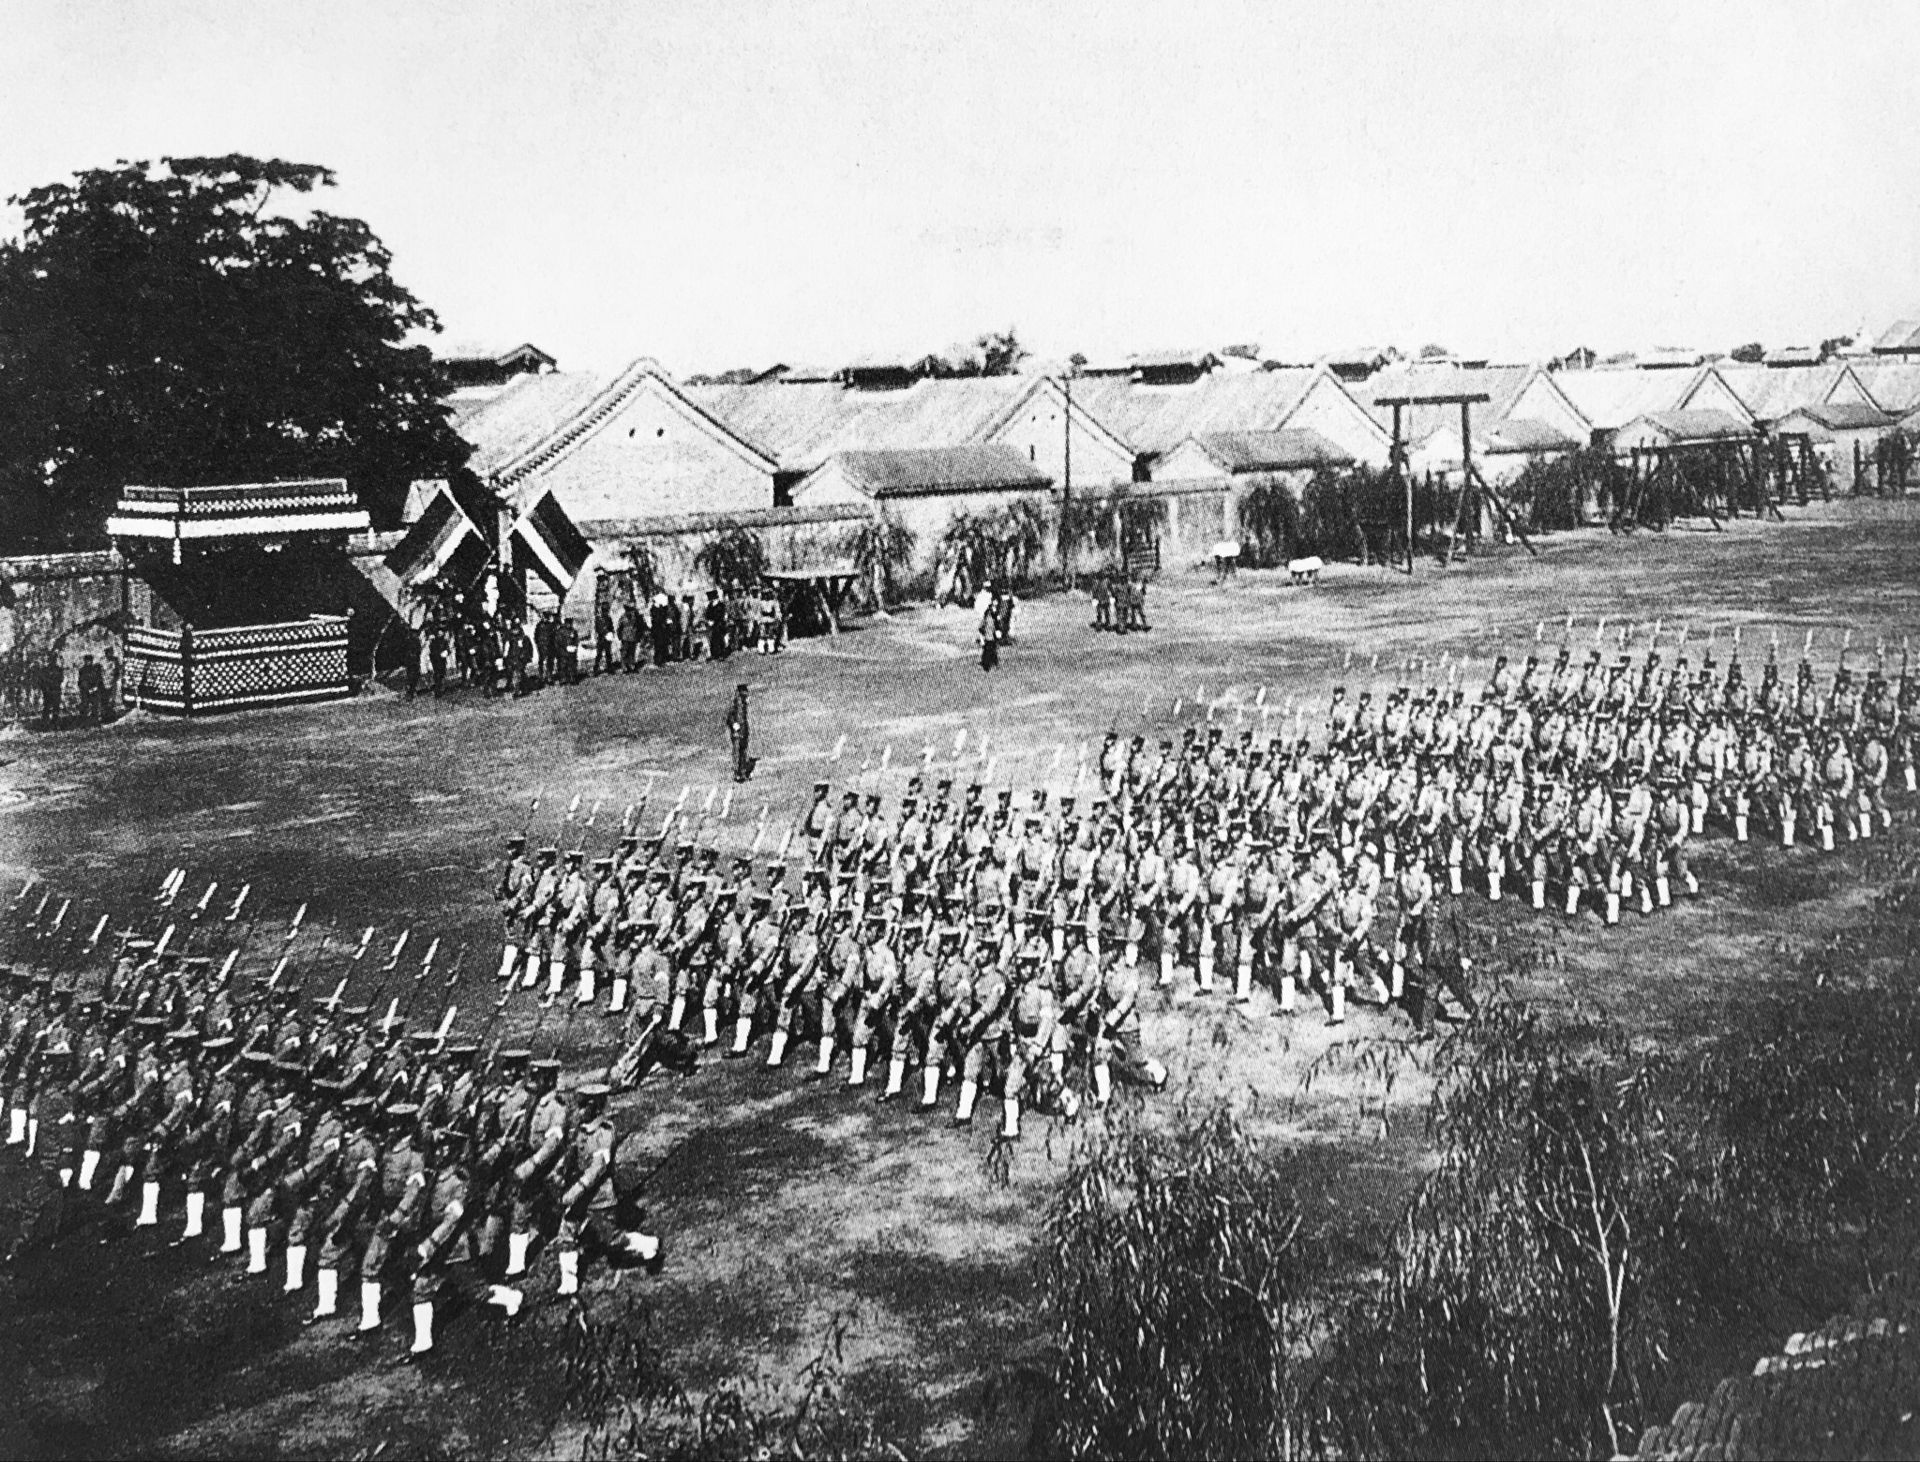 The Beiyang Army in training